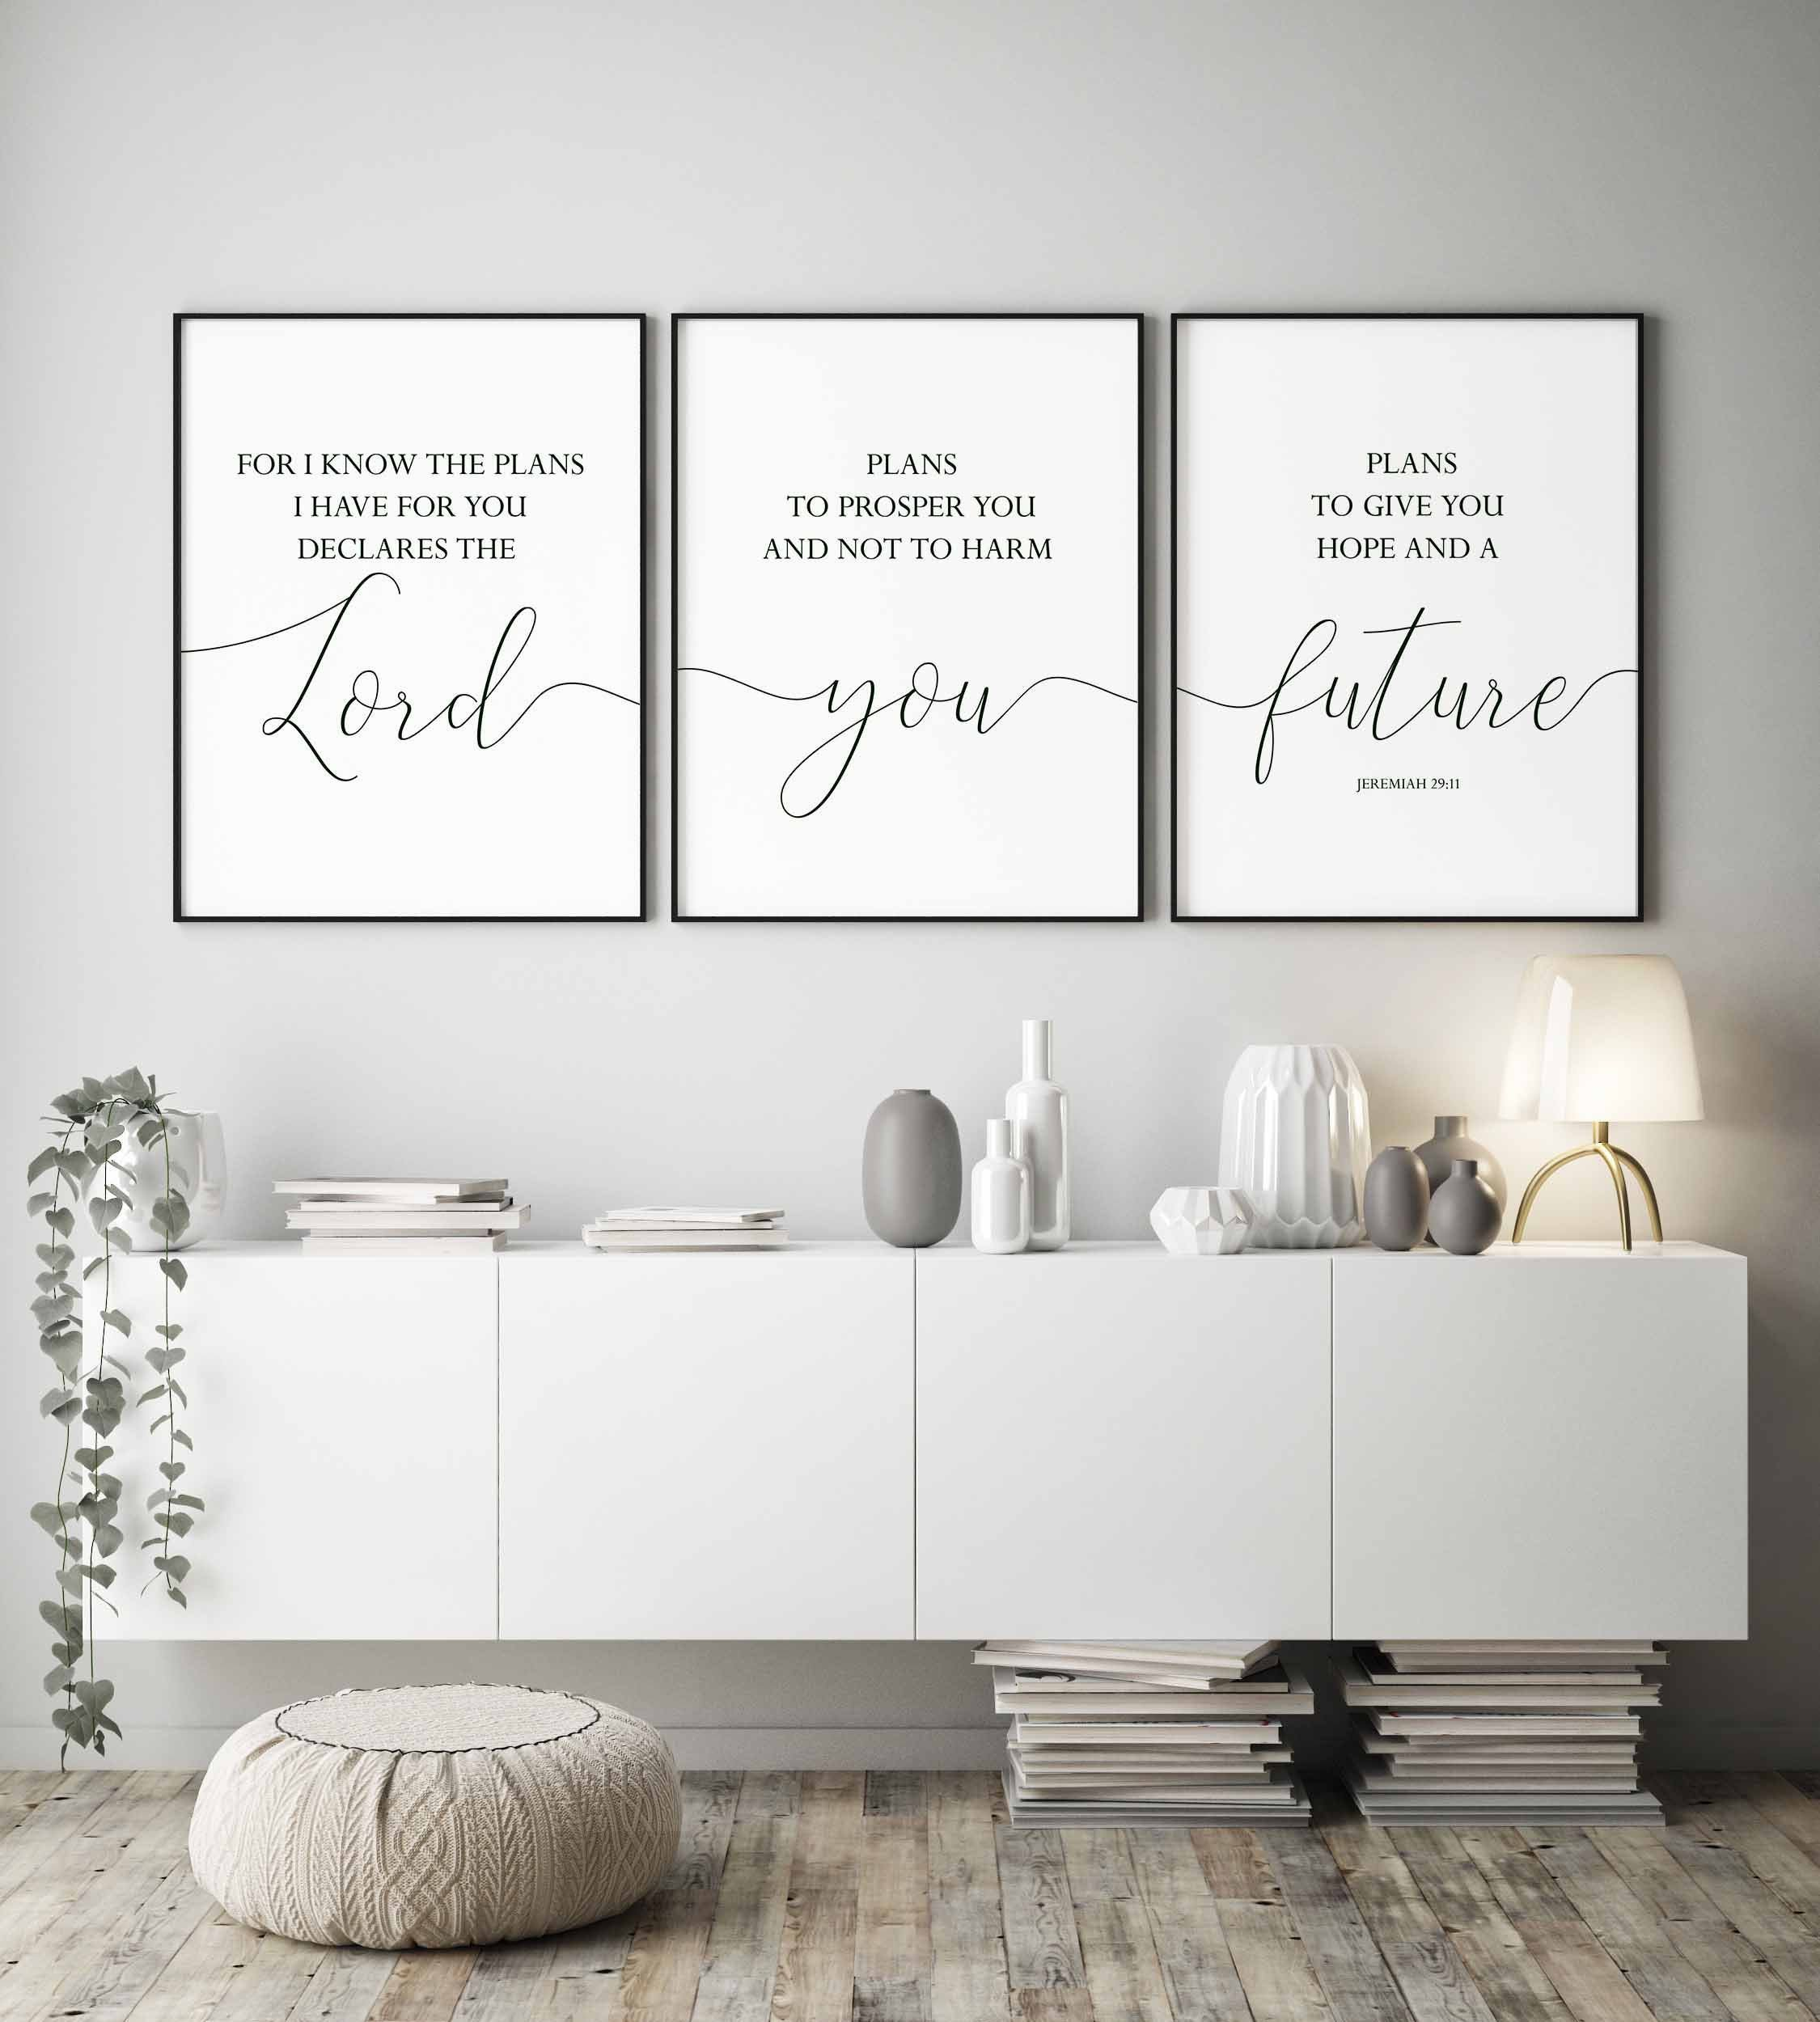 Signs for Bedroom Walls Inspirational for I Know the Plans I Have for You Print Bible Verse Wall